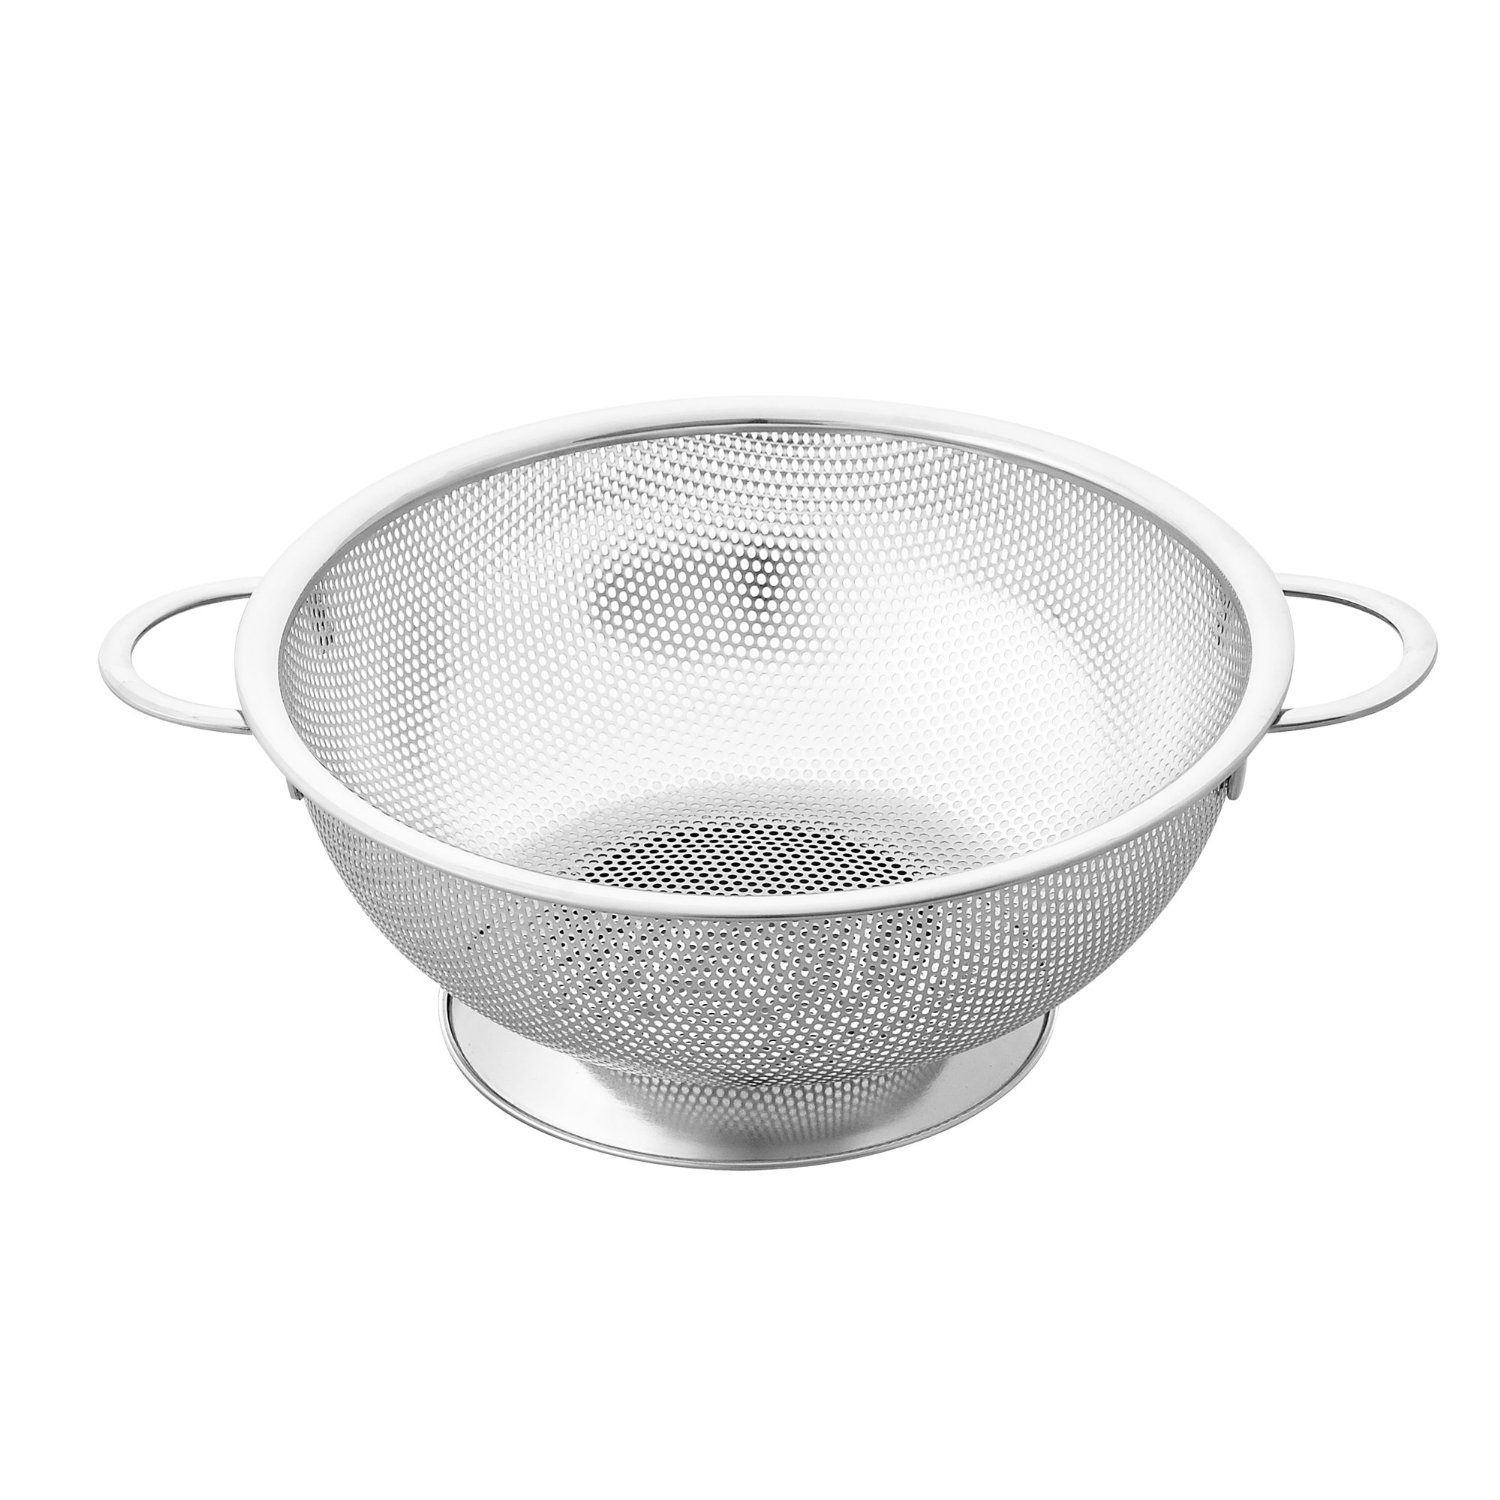 Cook N Home 3 Quart Micro Perforated Colander, Stainless Steel by Neway International Inc